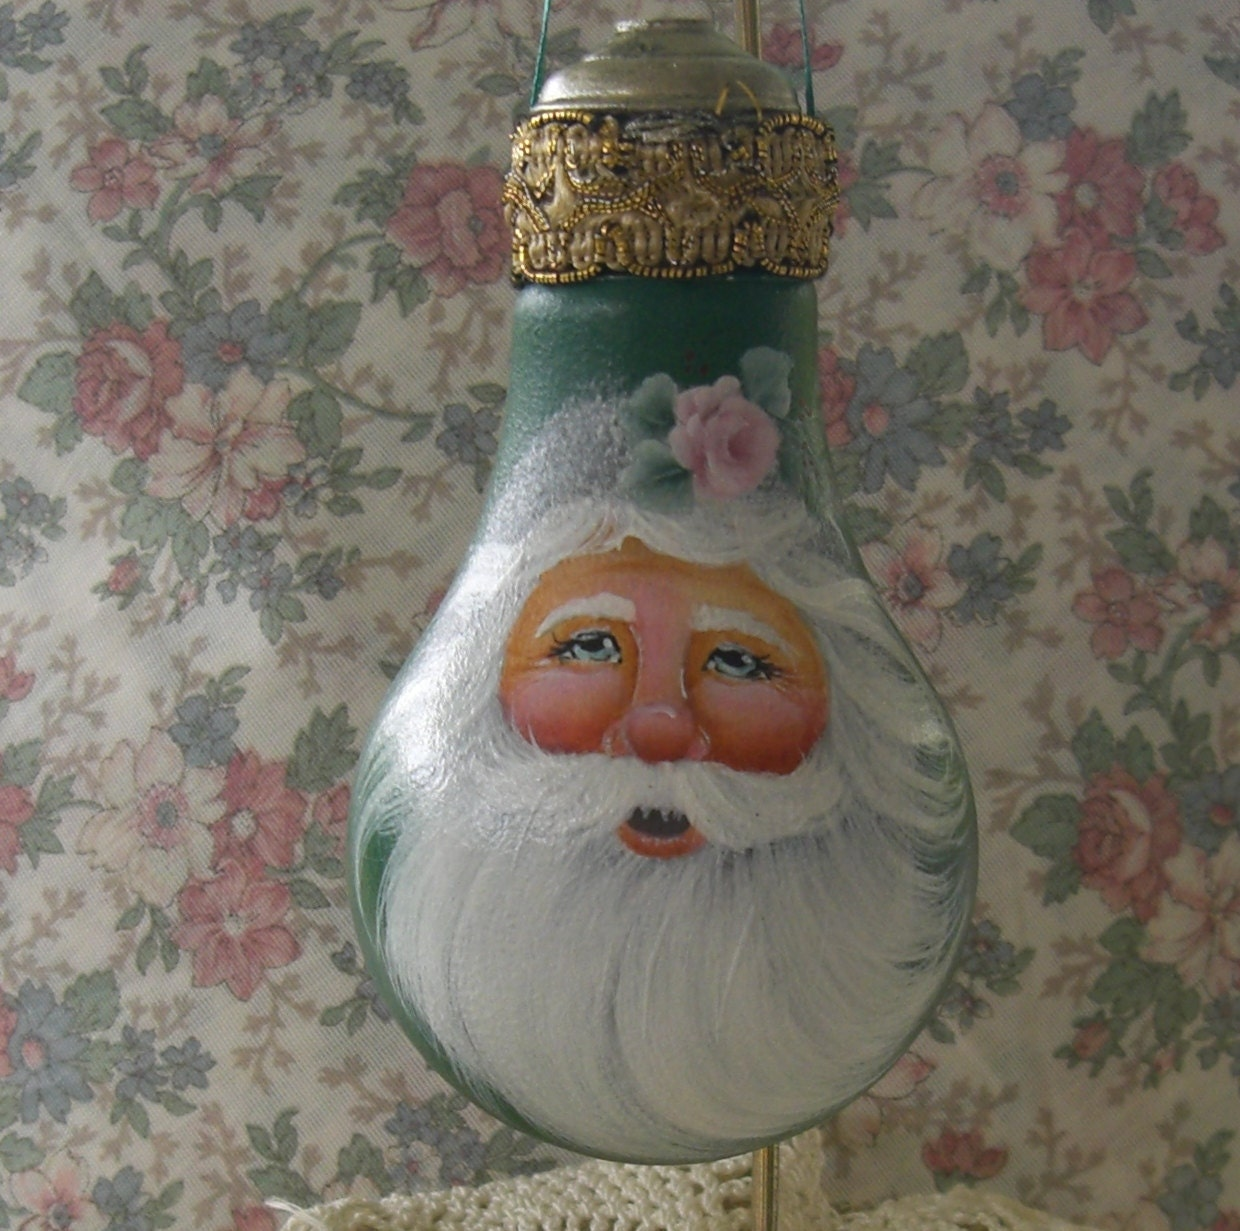 Christmas Light Bulb Decorations: Hand Painted Santa Light Bulb Ornament In Green Personalized